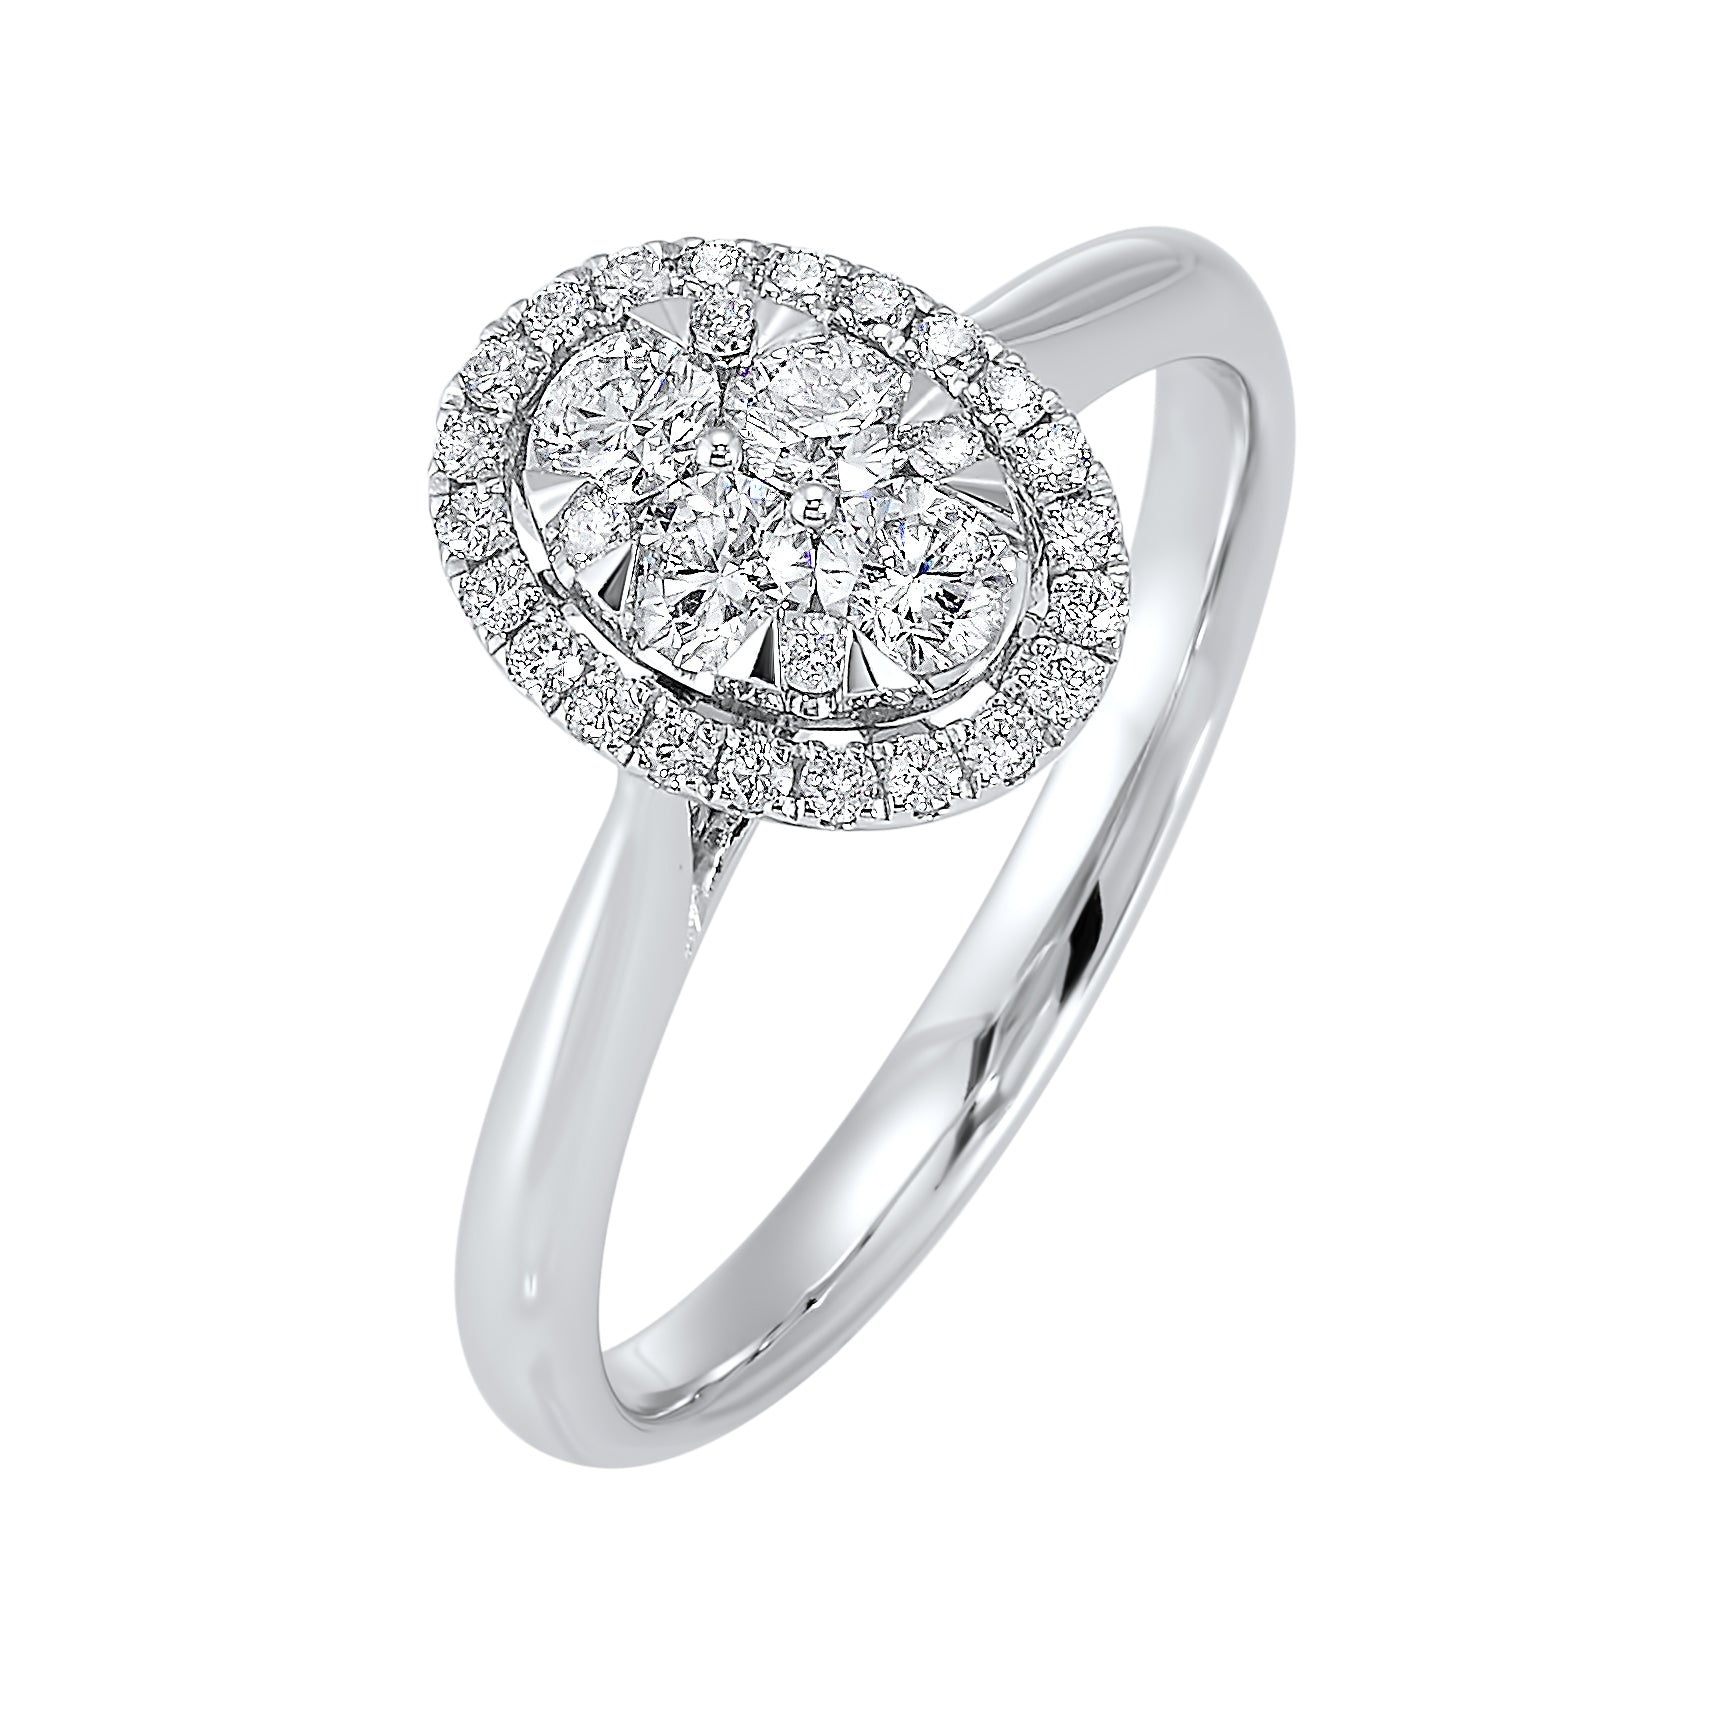 Oval Halo Diamond Engagement Ring in 14K White Gold (1/2 ct. tw.)